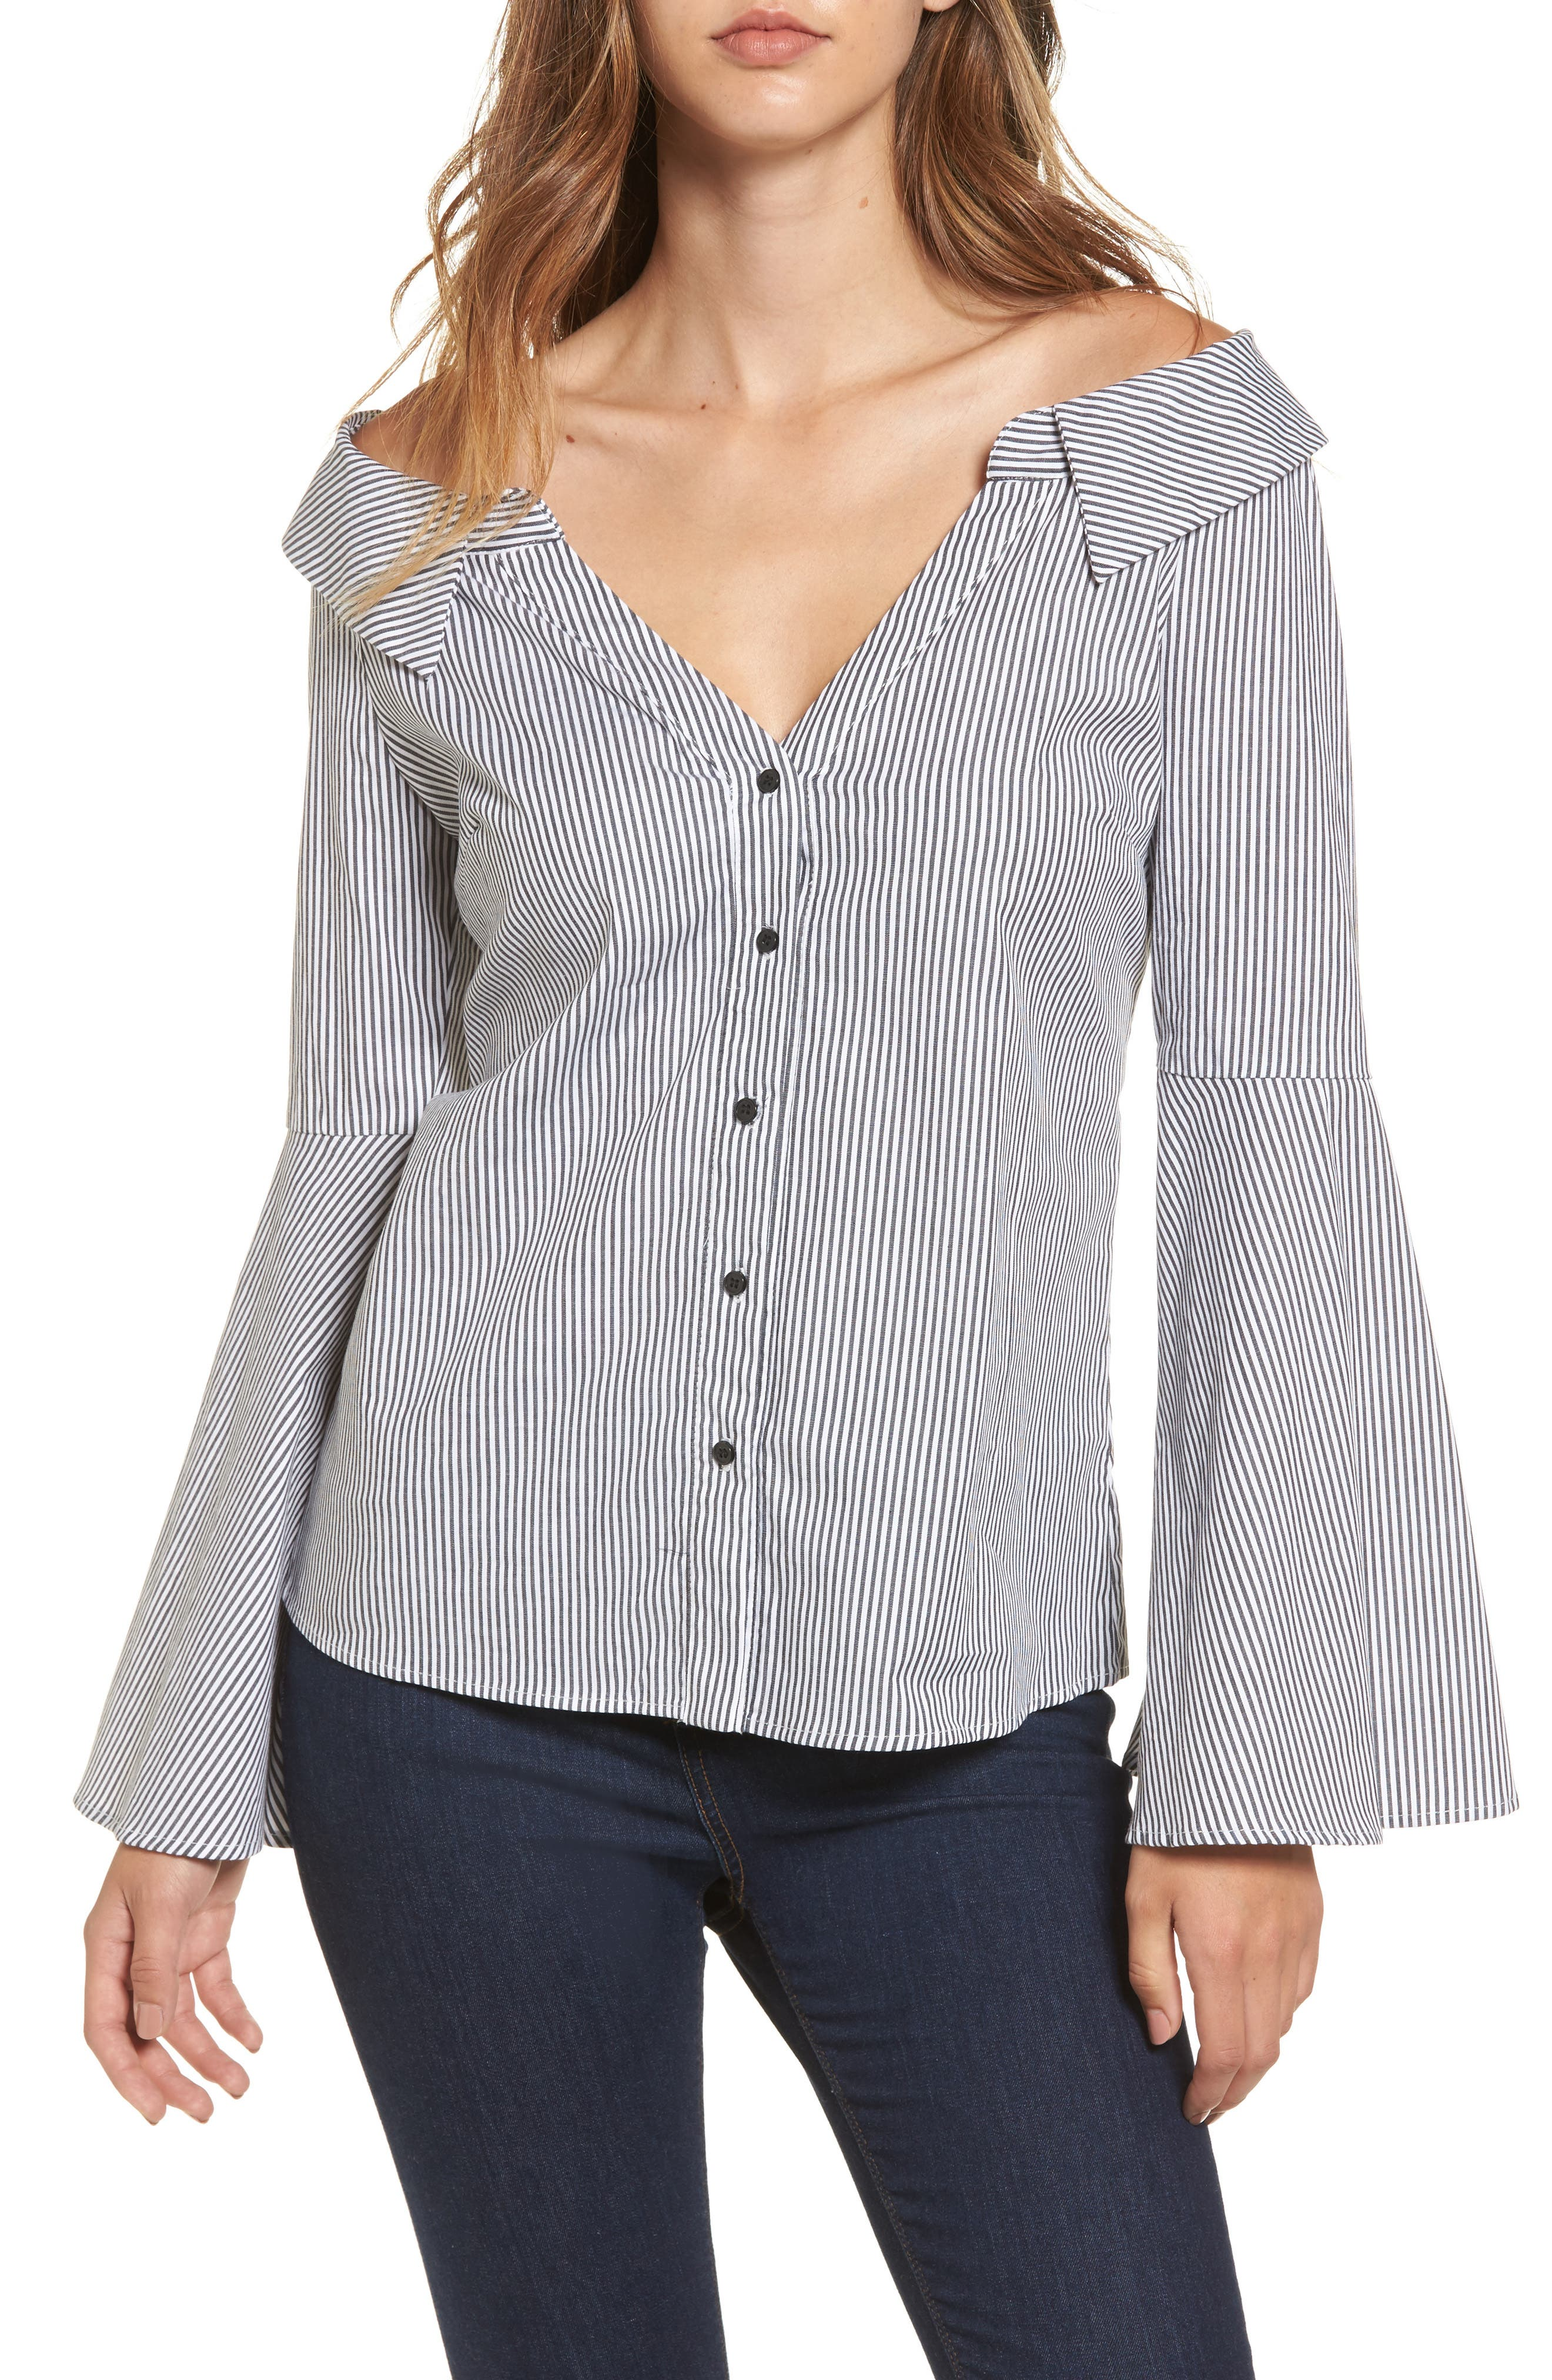 Socialite Stripe Portrait Neck Top